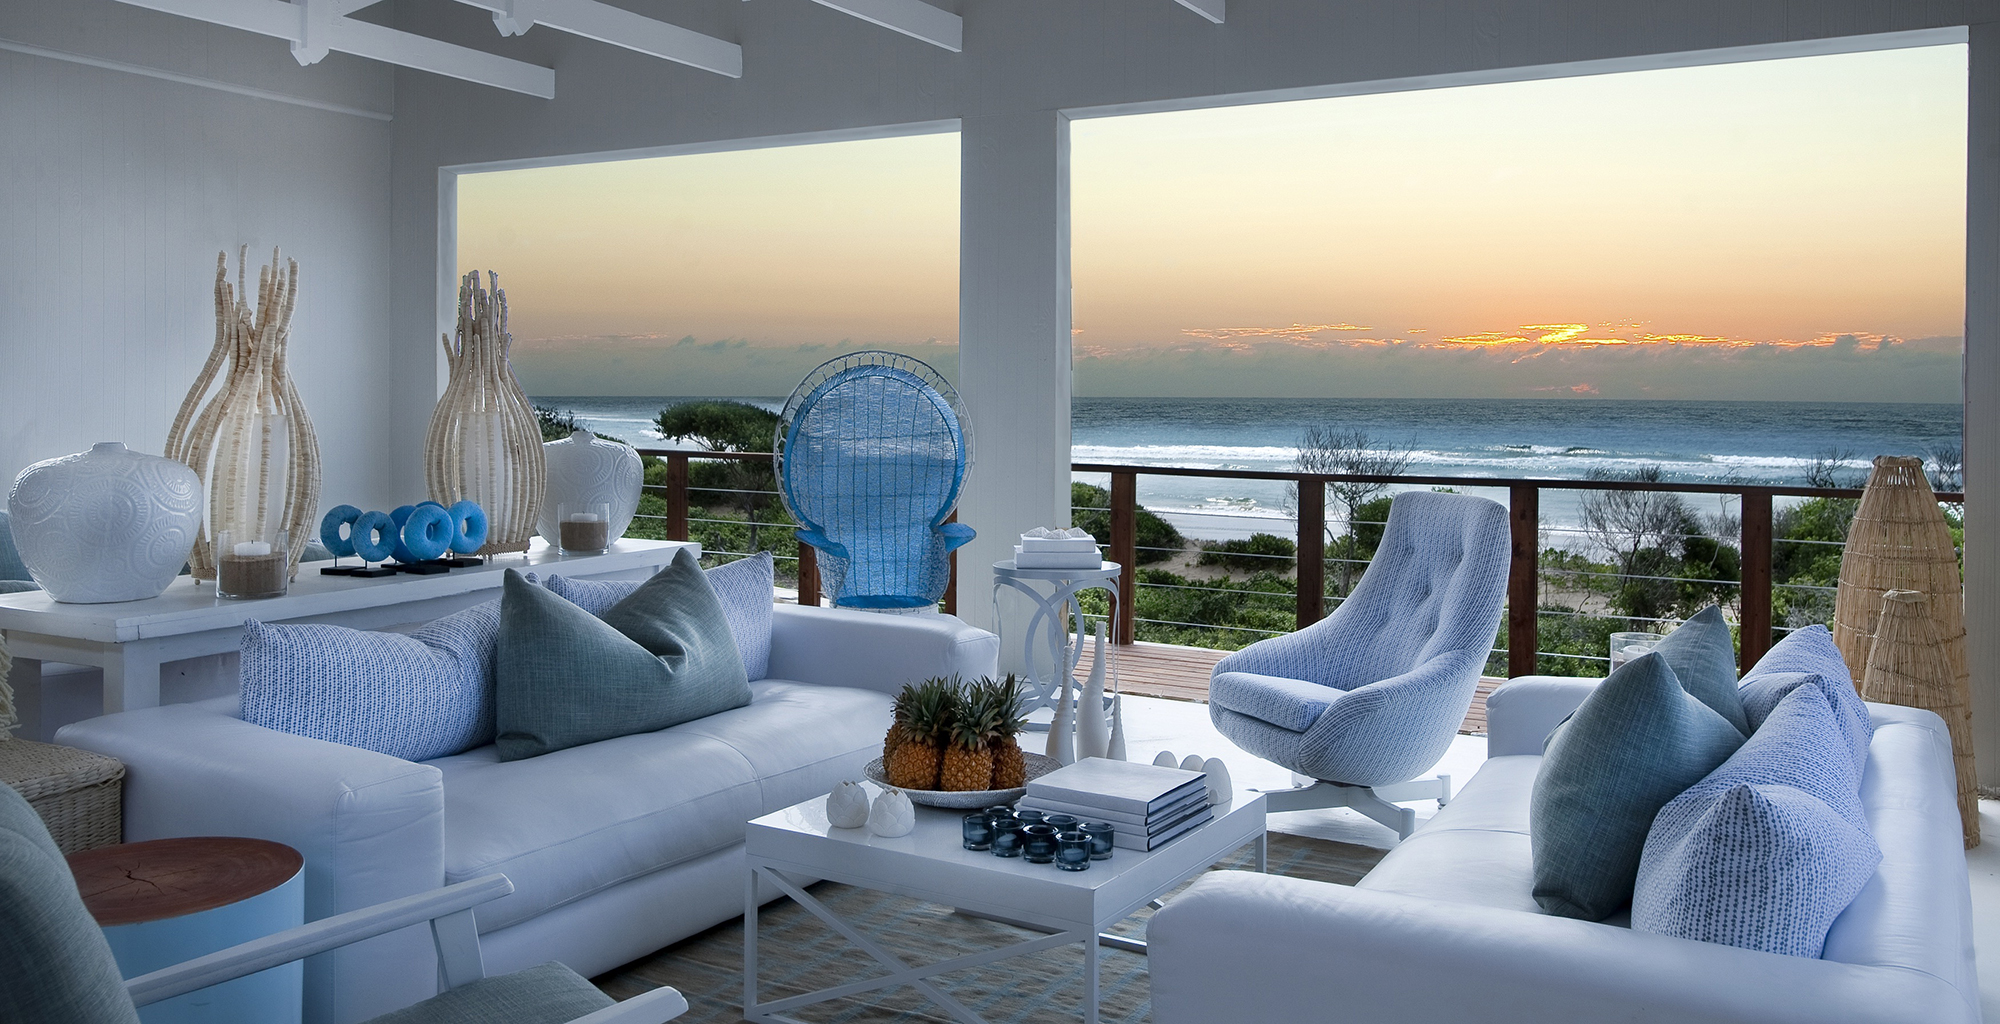 Mozambique-Maputo-Inhambane-White-Pearl-Resort-Lounge